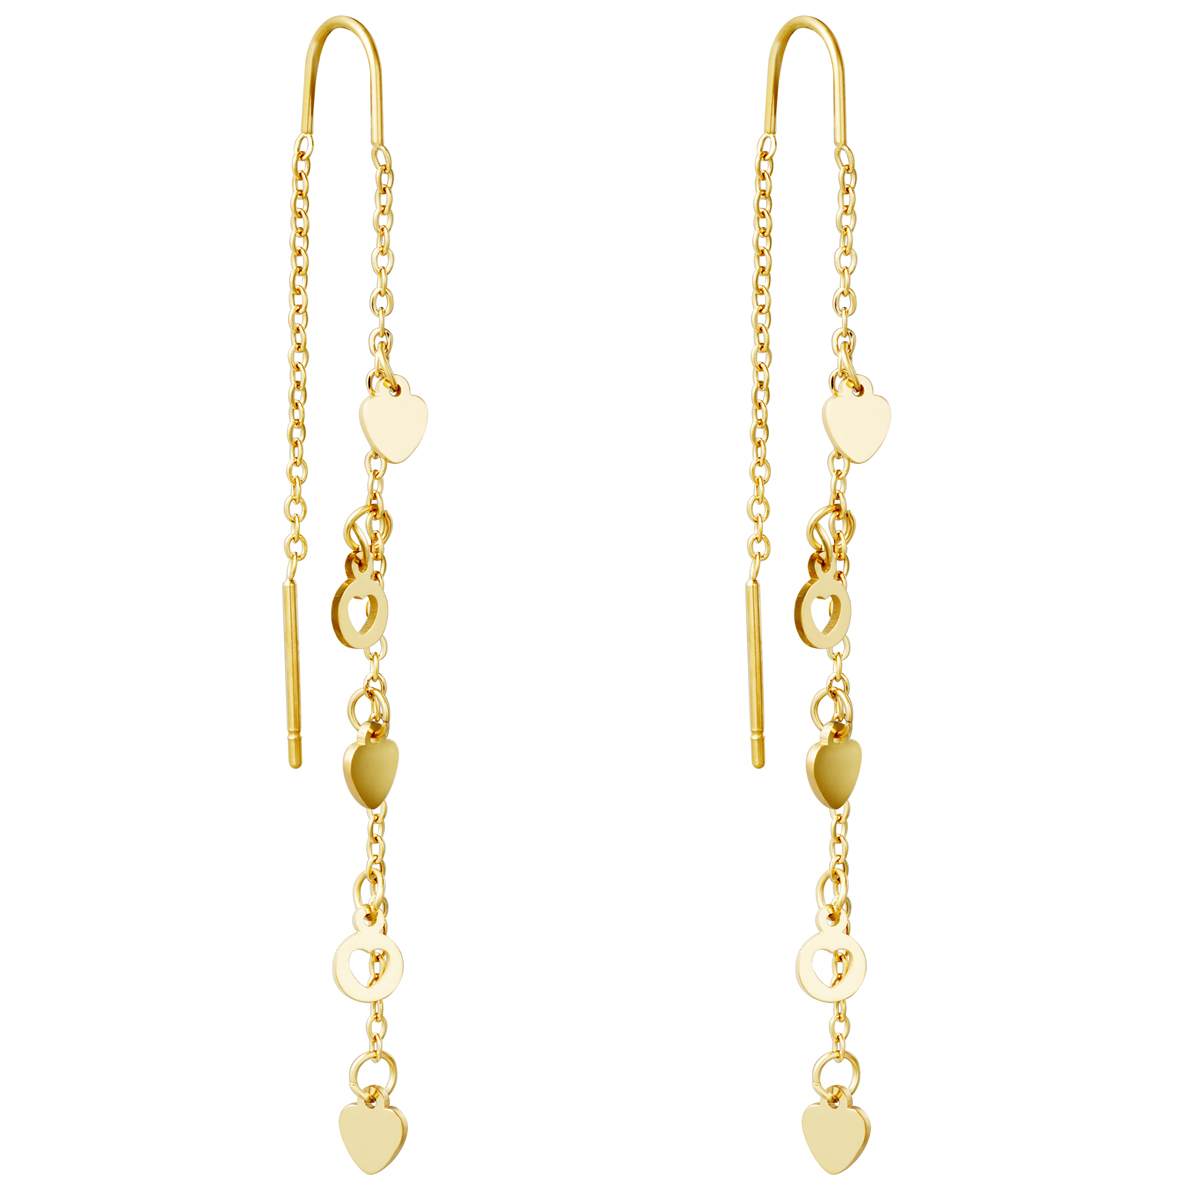 Boucles d'oreilles From the Heart